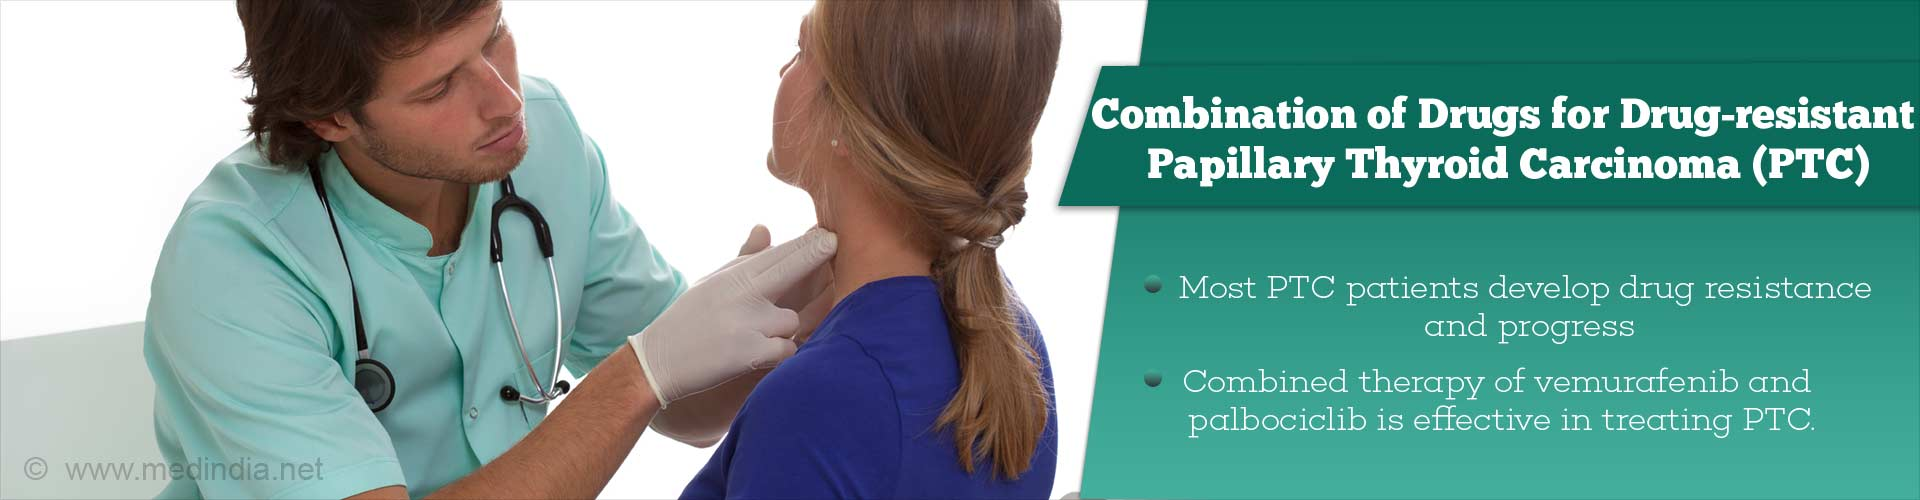 combination of drugs for drug-resistant papillary thyroid carcinoma (PTC) - most PTC patients develop drug resistance and progress - combined therapy of vemurafenib and palbociclib is effective in treating PTC